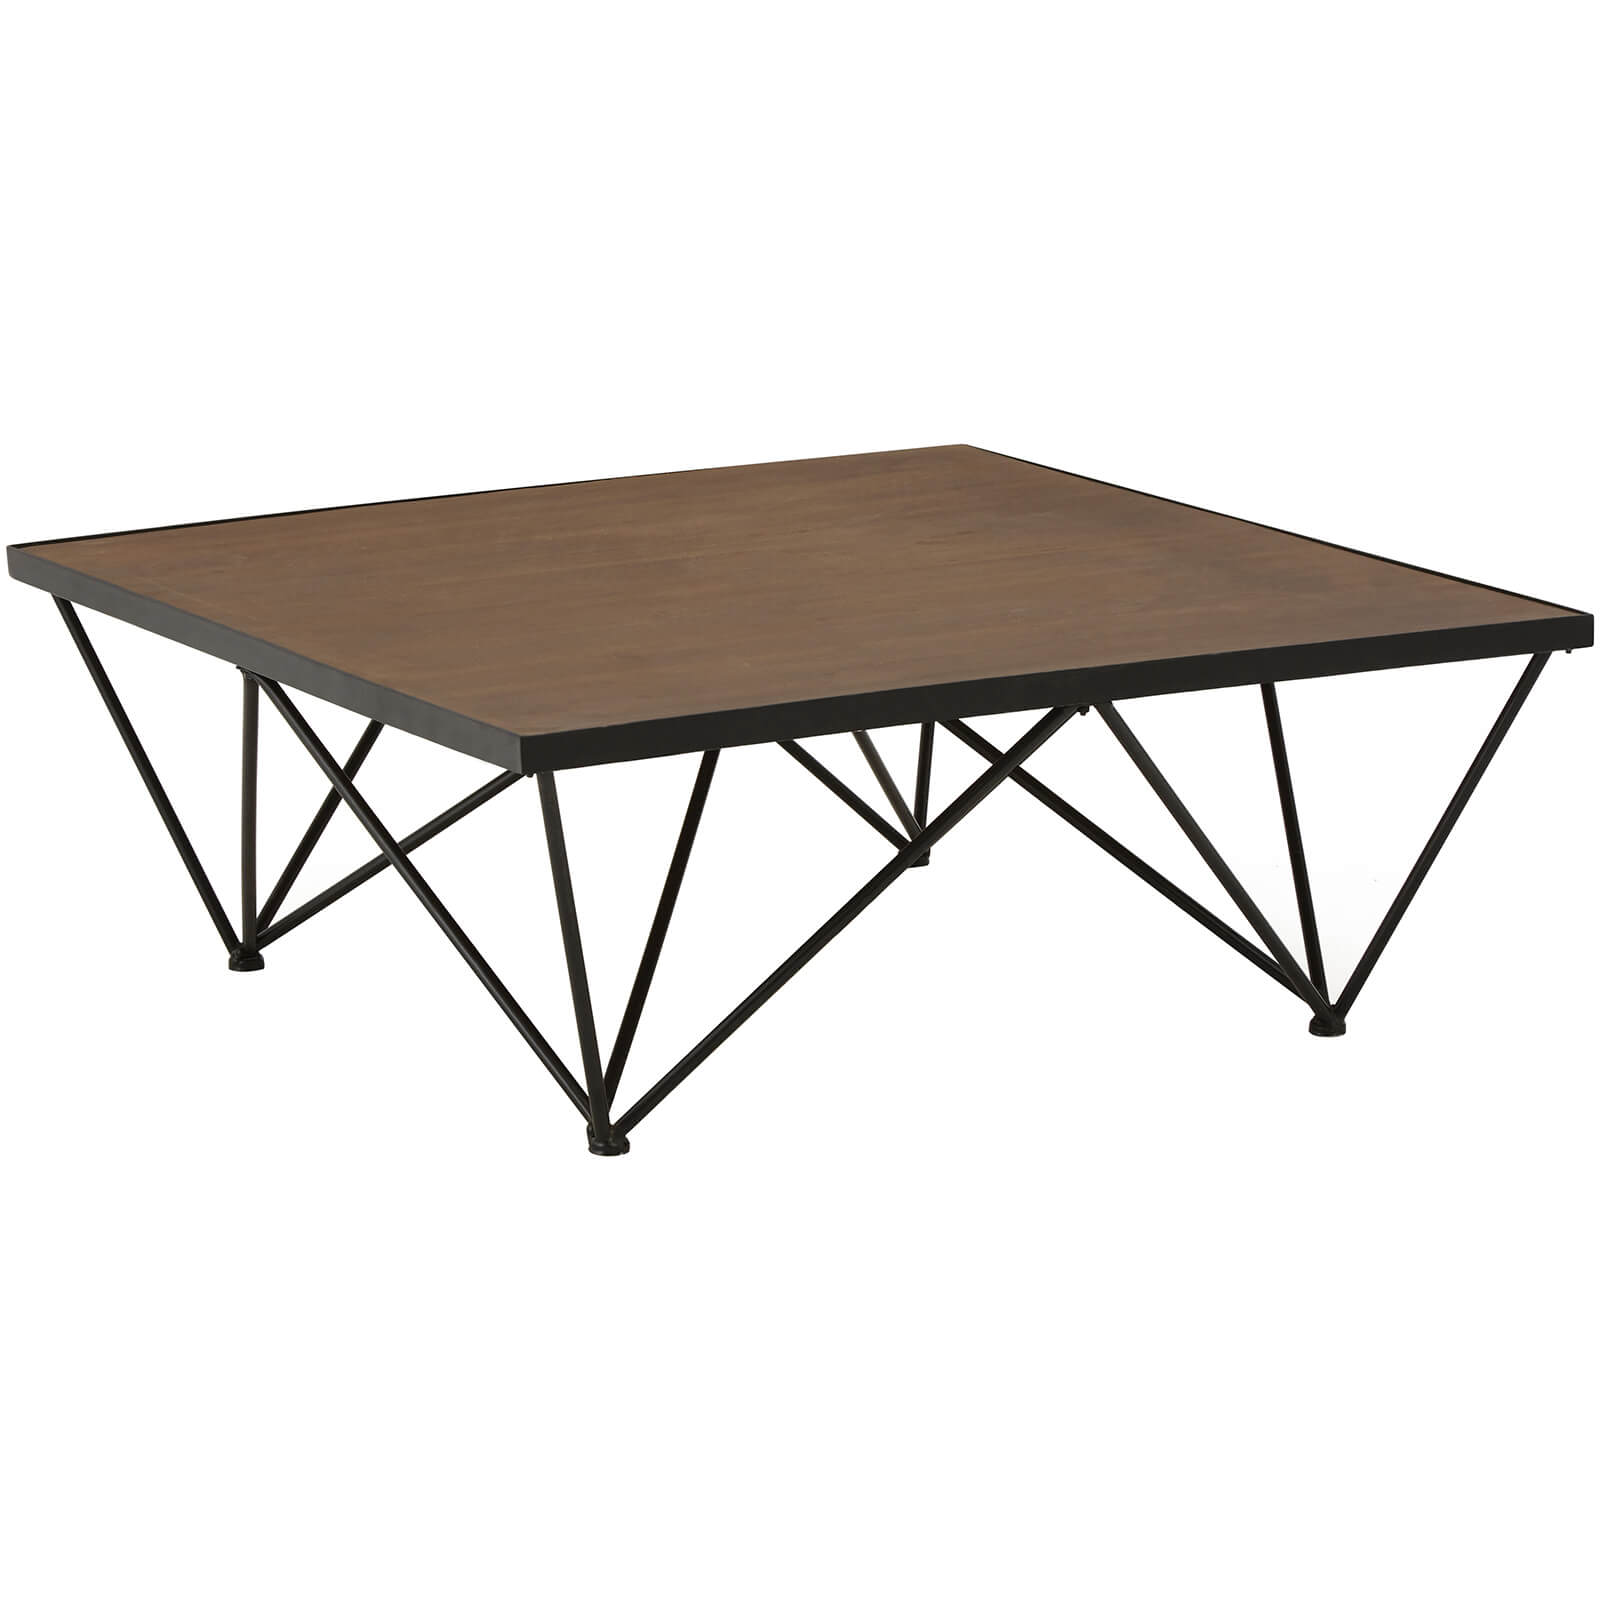 Fifty Five South New Foundry Square Coffee Table - Fir Wood/Metal